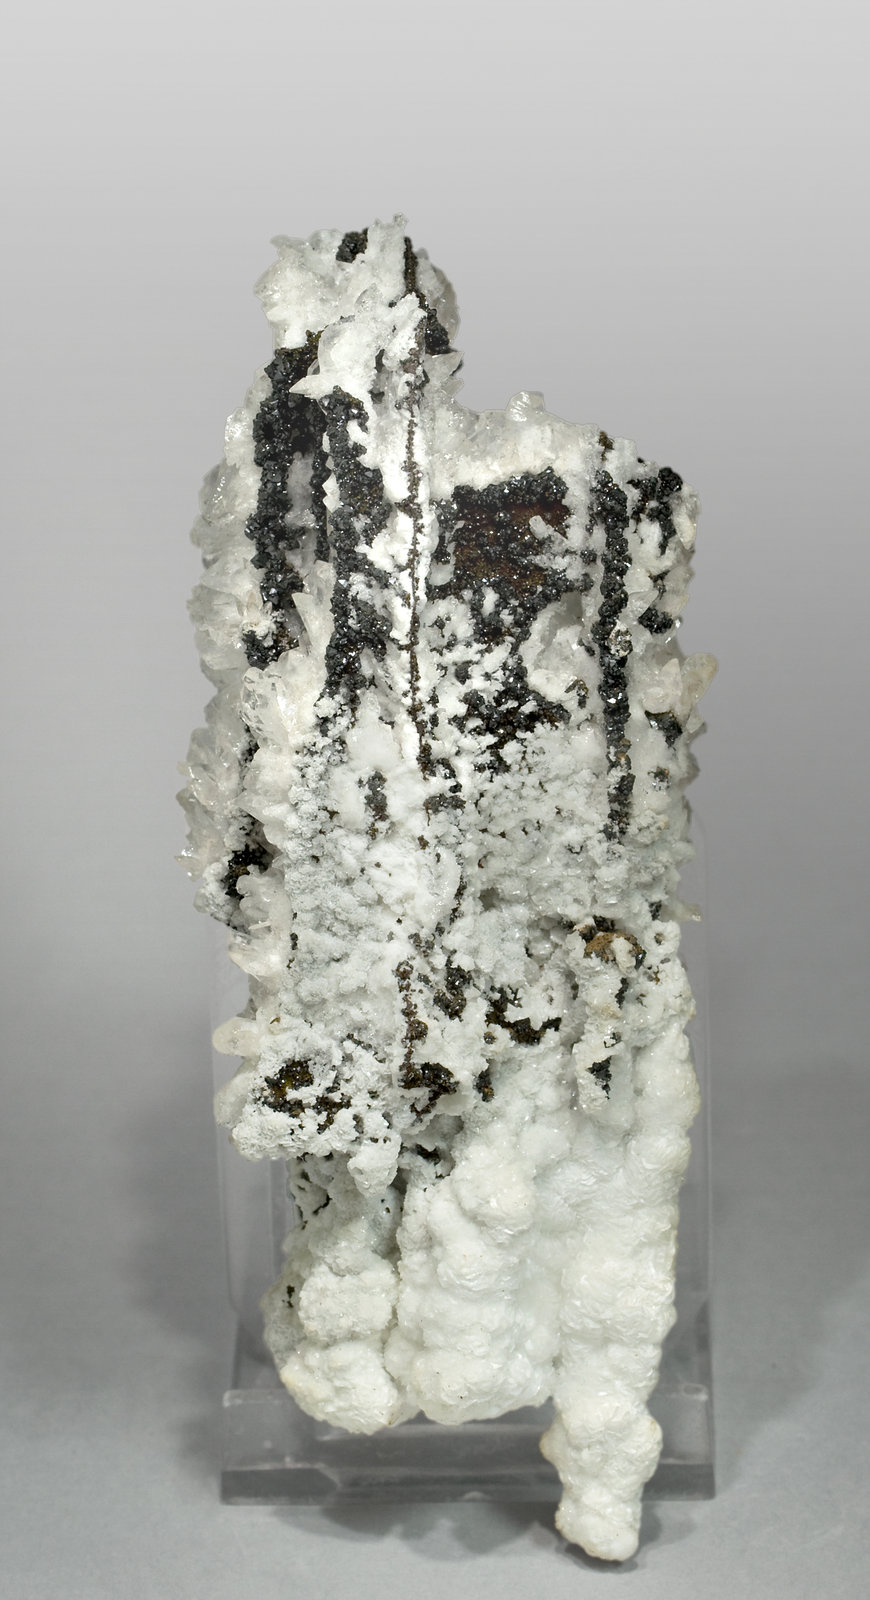 specimens/s_imagesT4/Descloizite-NK86T4f.jpg